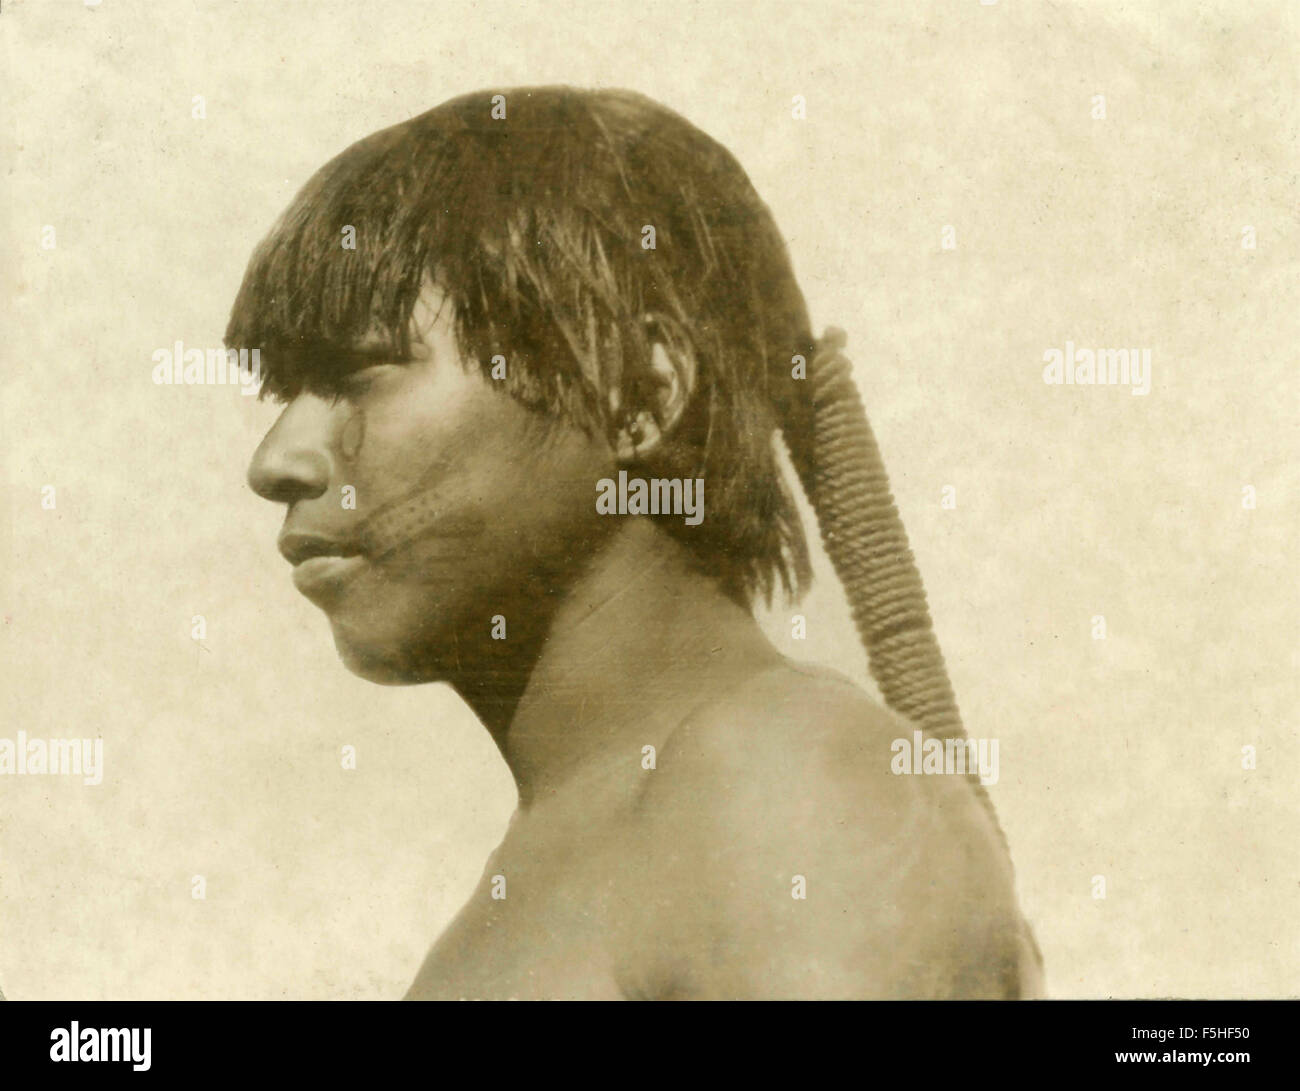 Warrior of the tribe of Carajas, Brazil - Stock Image